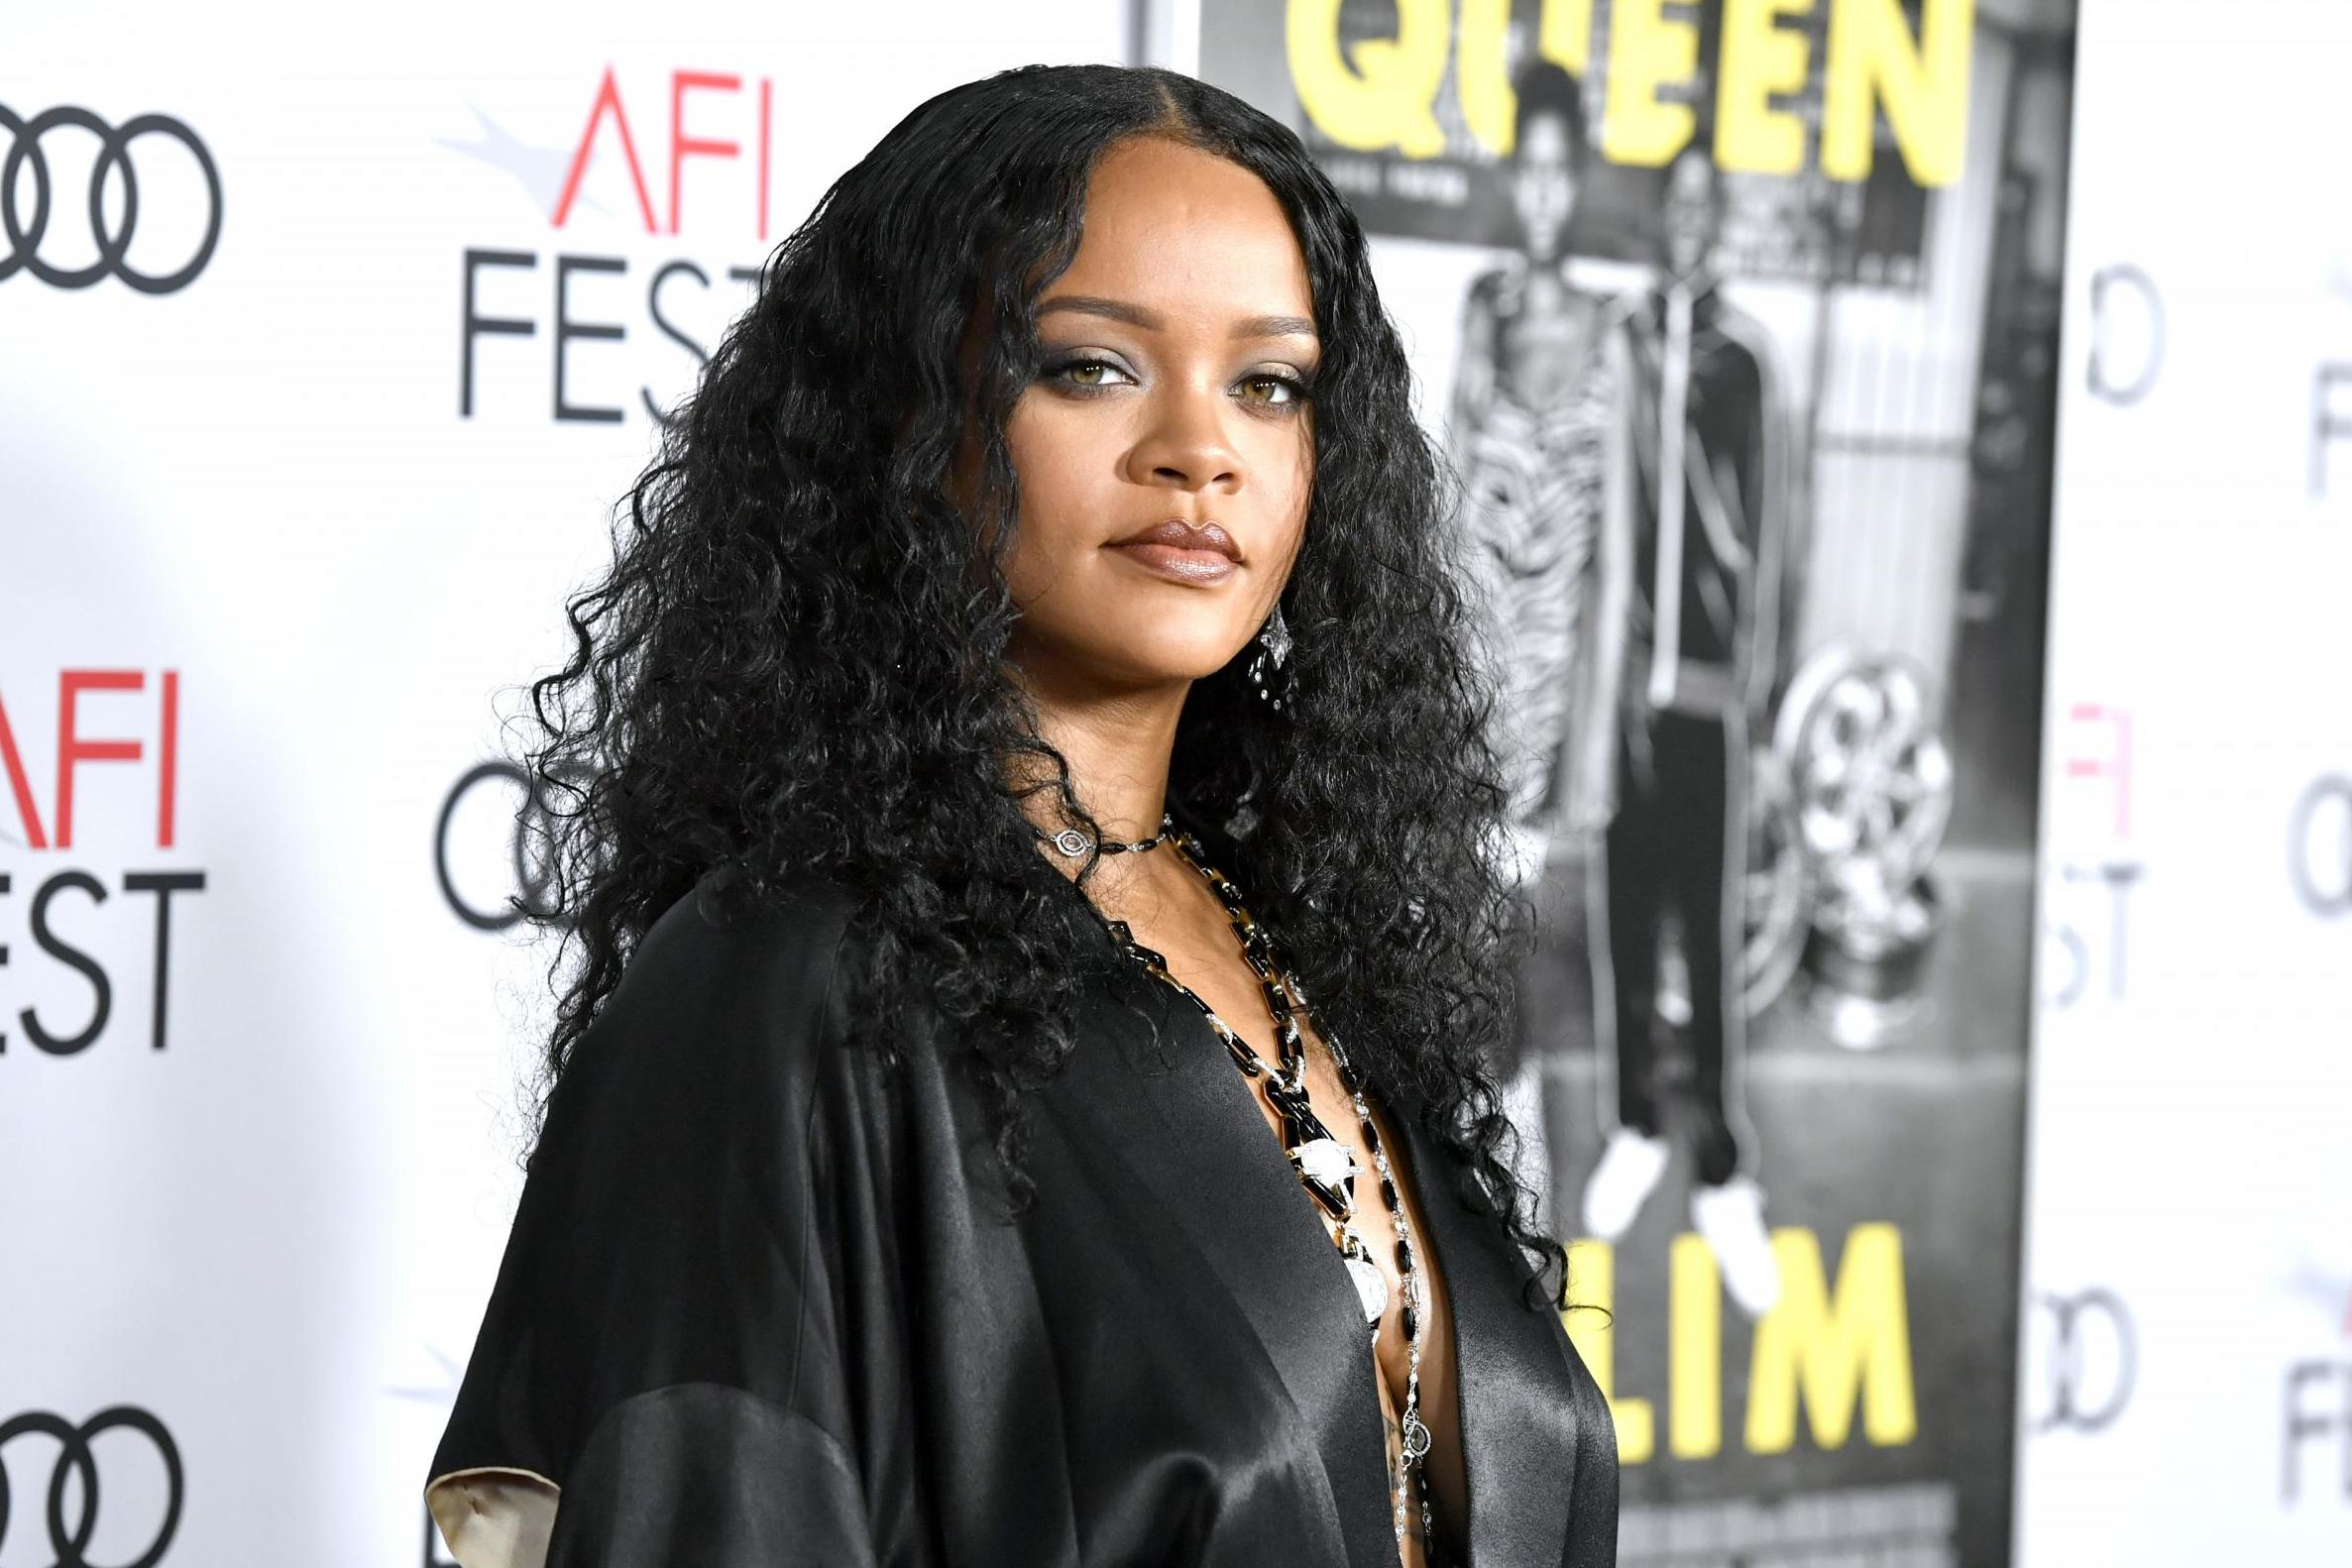 Rihanna says she is 'haunted' by George Floyd's death in furious Instagram post